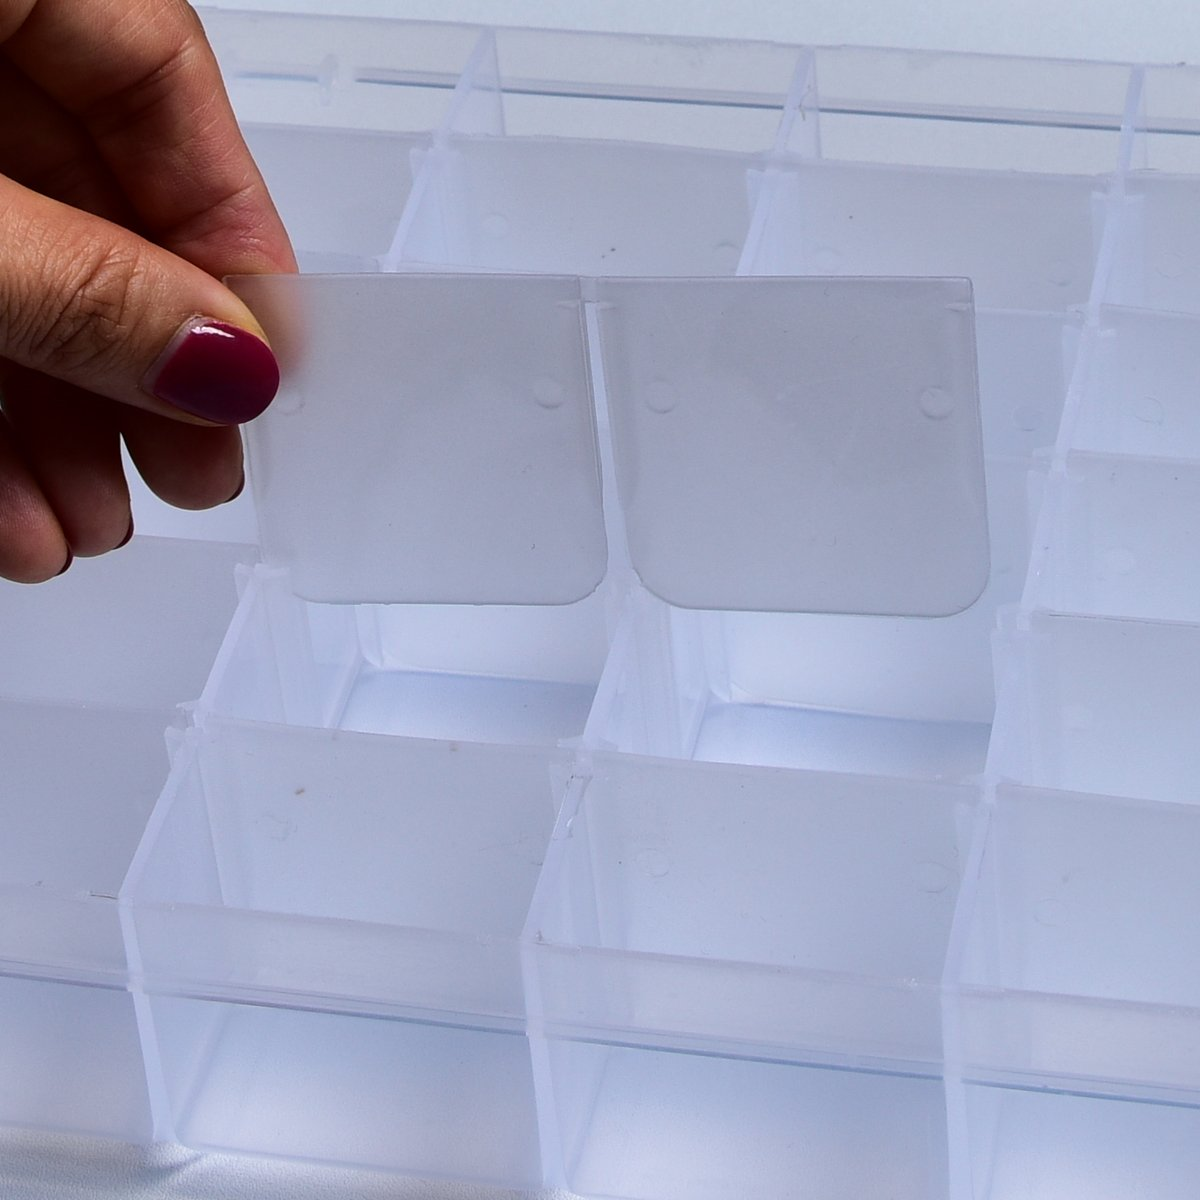 Jewelry Organizers and Storage, Plastic Earring Storage Containers with 36 Grids Adjustable Dividers